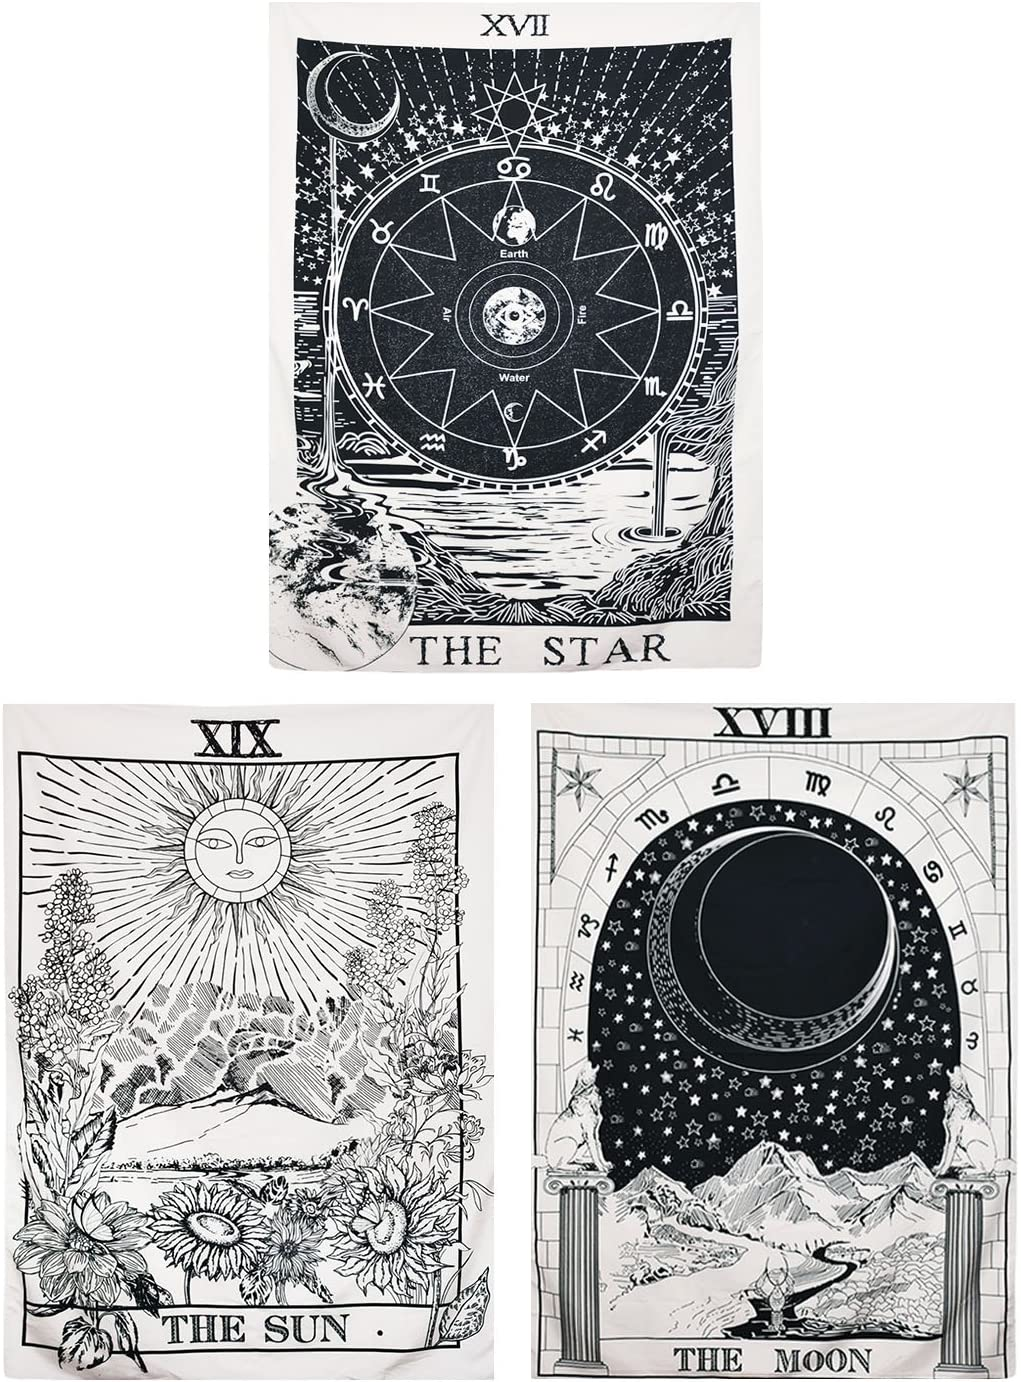 Pack of 3 Tarot Tapestry The Sun The Moon The Star Tarot Card Tapestry Medieval Europe Divination Tapestry Mysterious Wall Hanging Tapestries for Bedroom Living Room Dorm (51.2 x 59.1 inches)